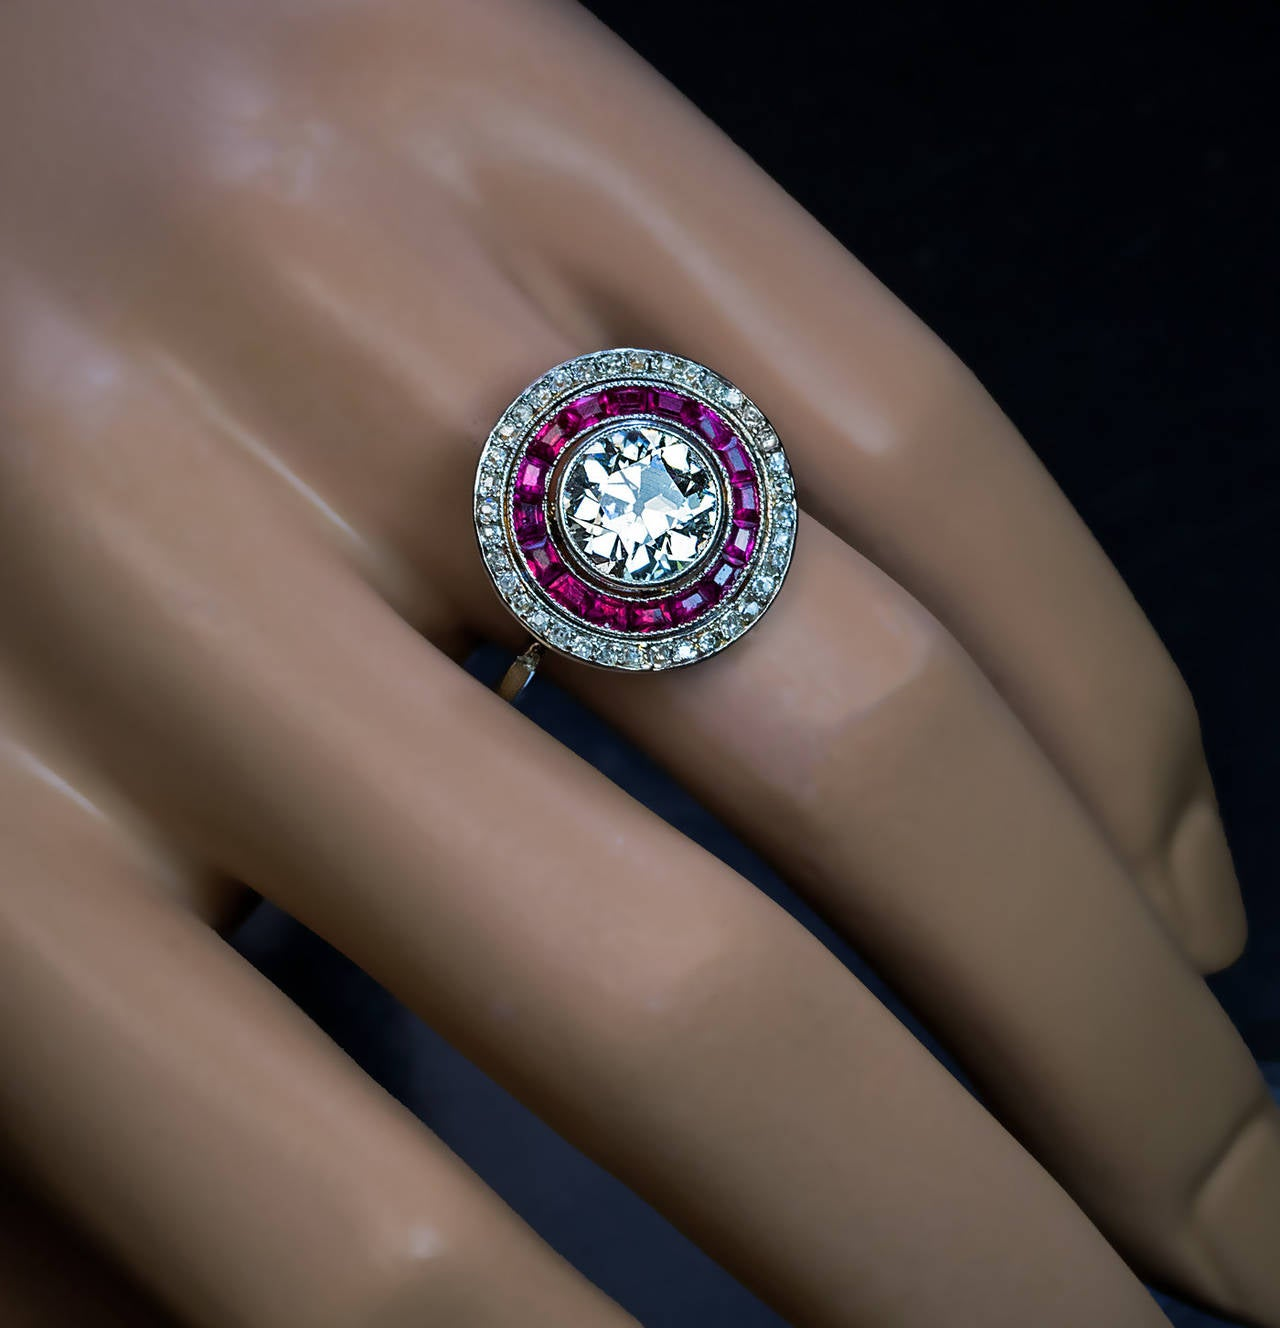 Edwardian / Early Art Deco, circa 1915  The ring is centered with a bright white and sparkling old European cut diamond (approximately 2.10 ct) encircled by a row of French cut rubies and further set with a border of old cut diamonds